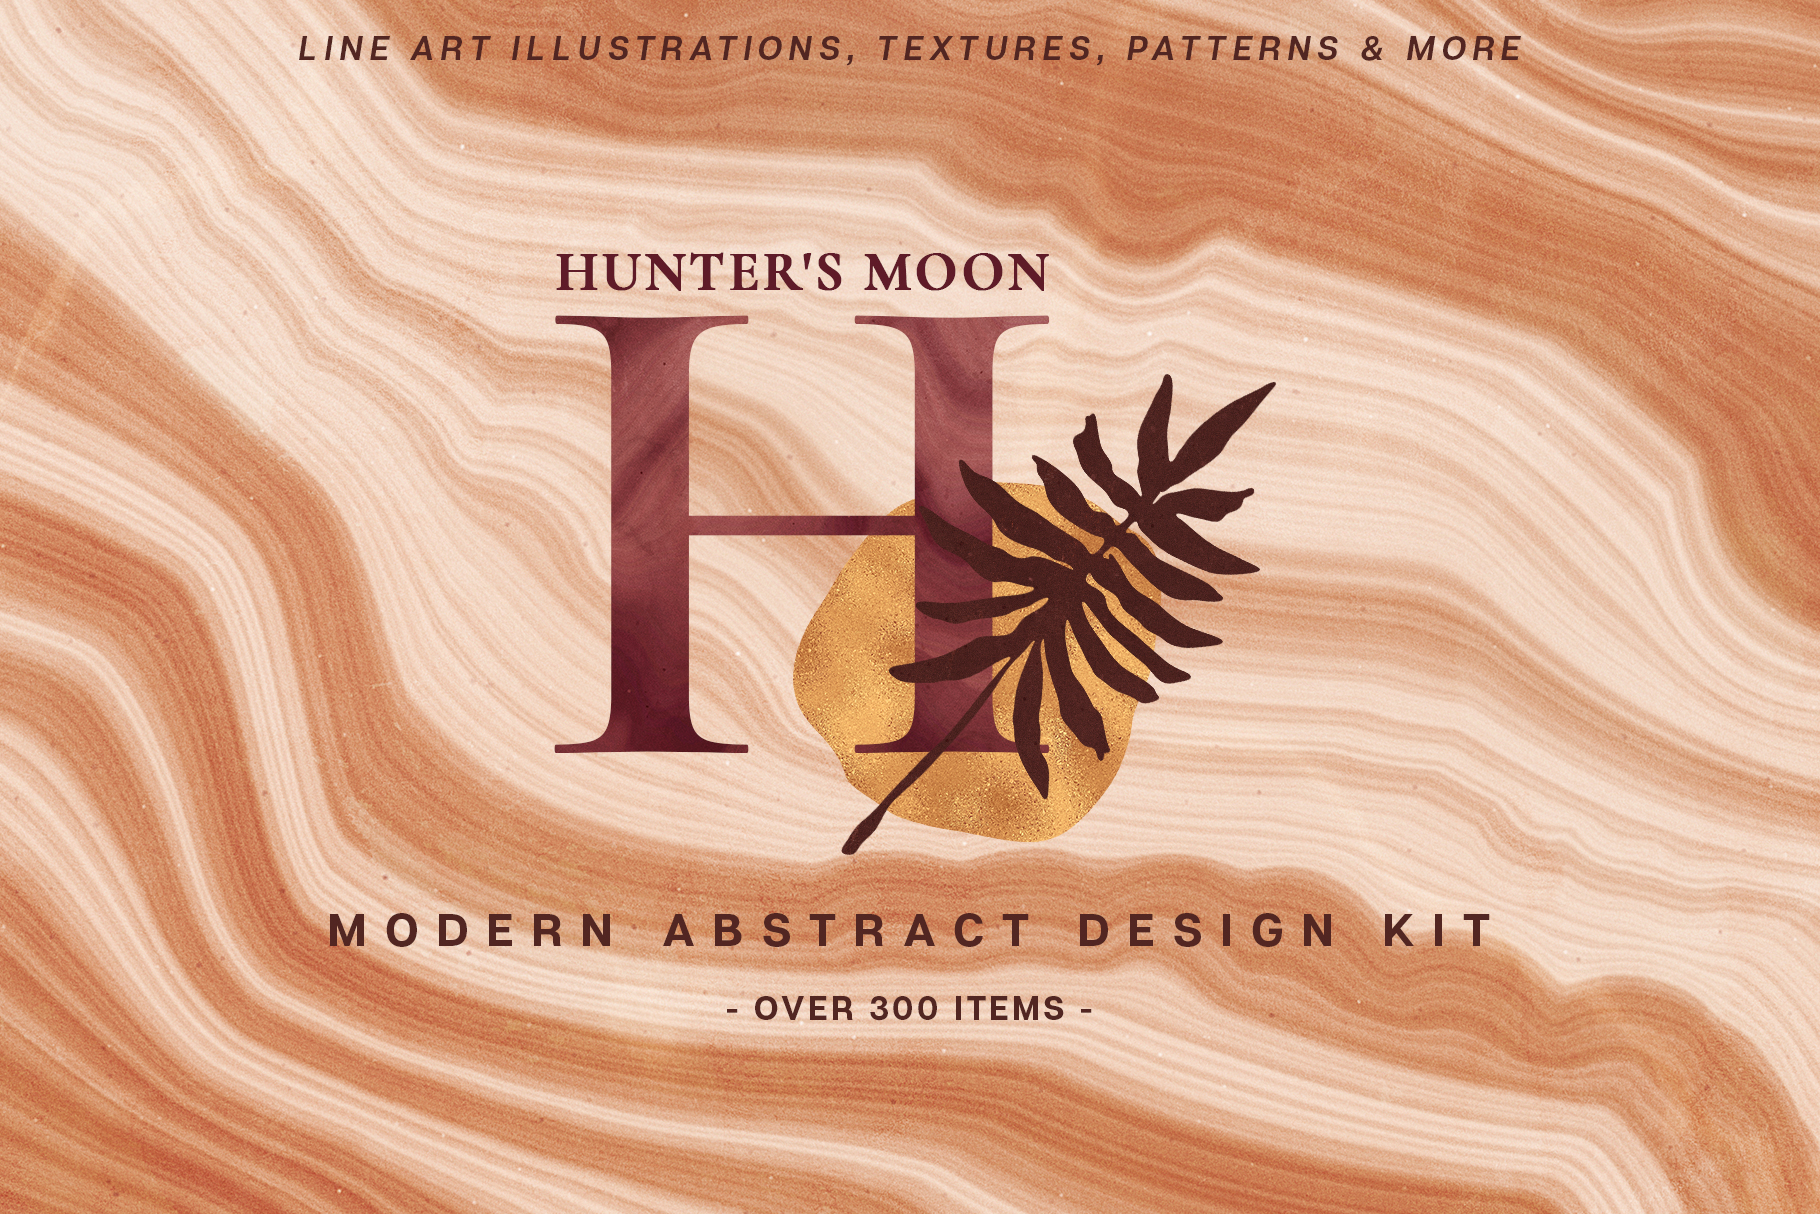 Abstract Line Art Design Kit example image 1